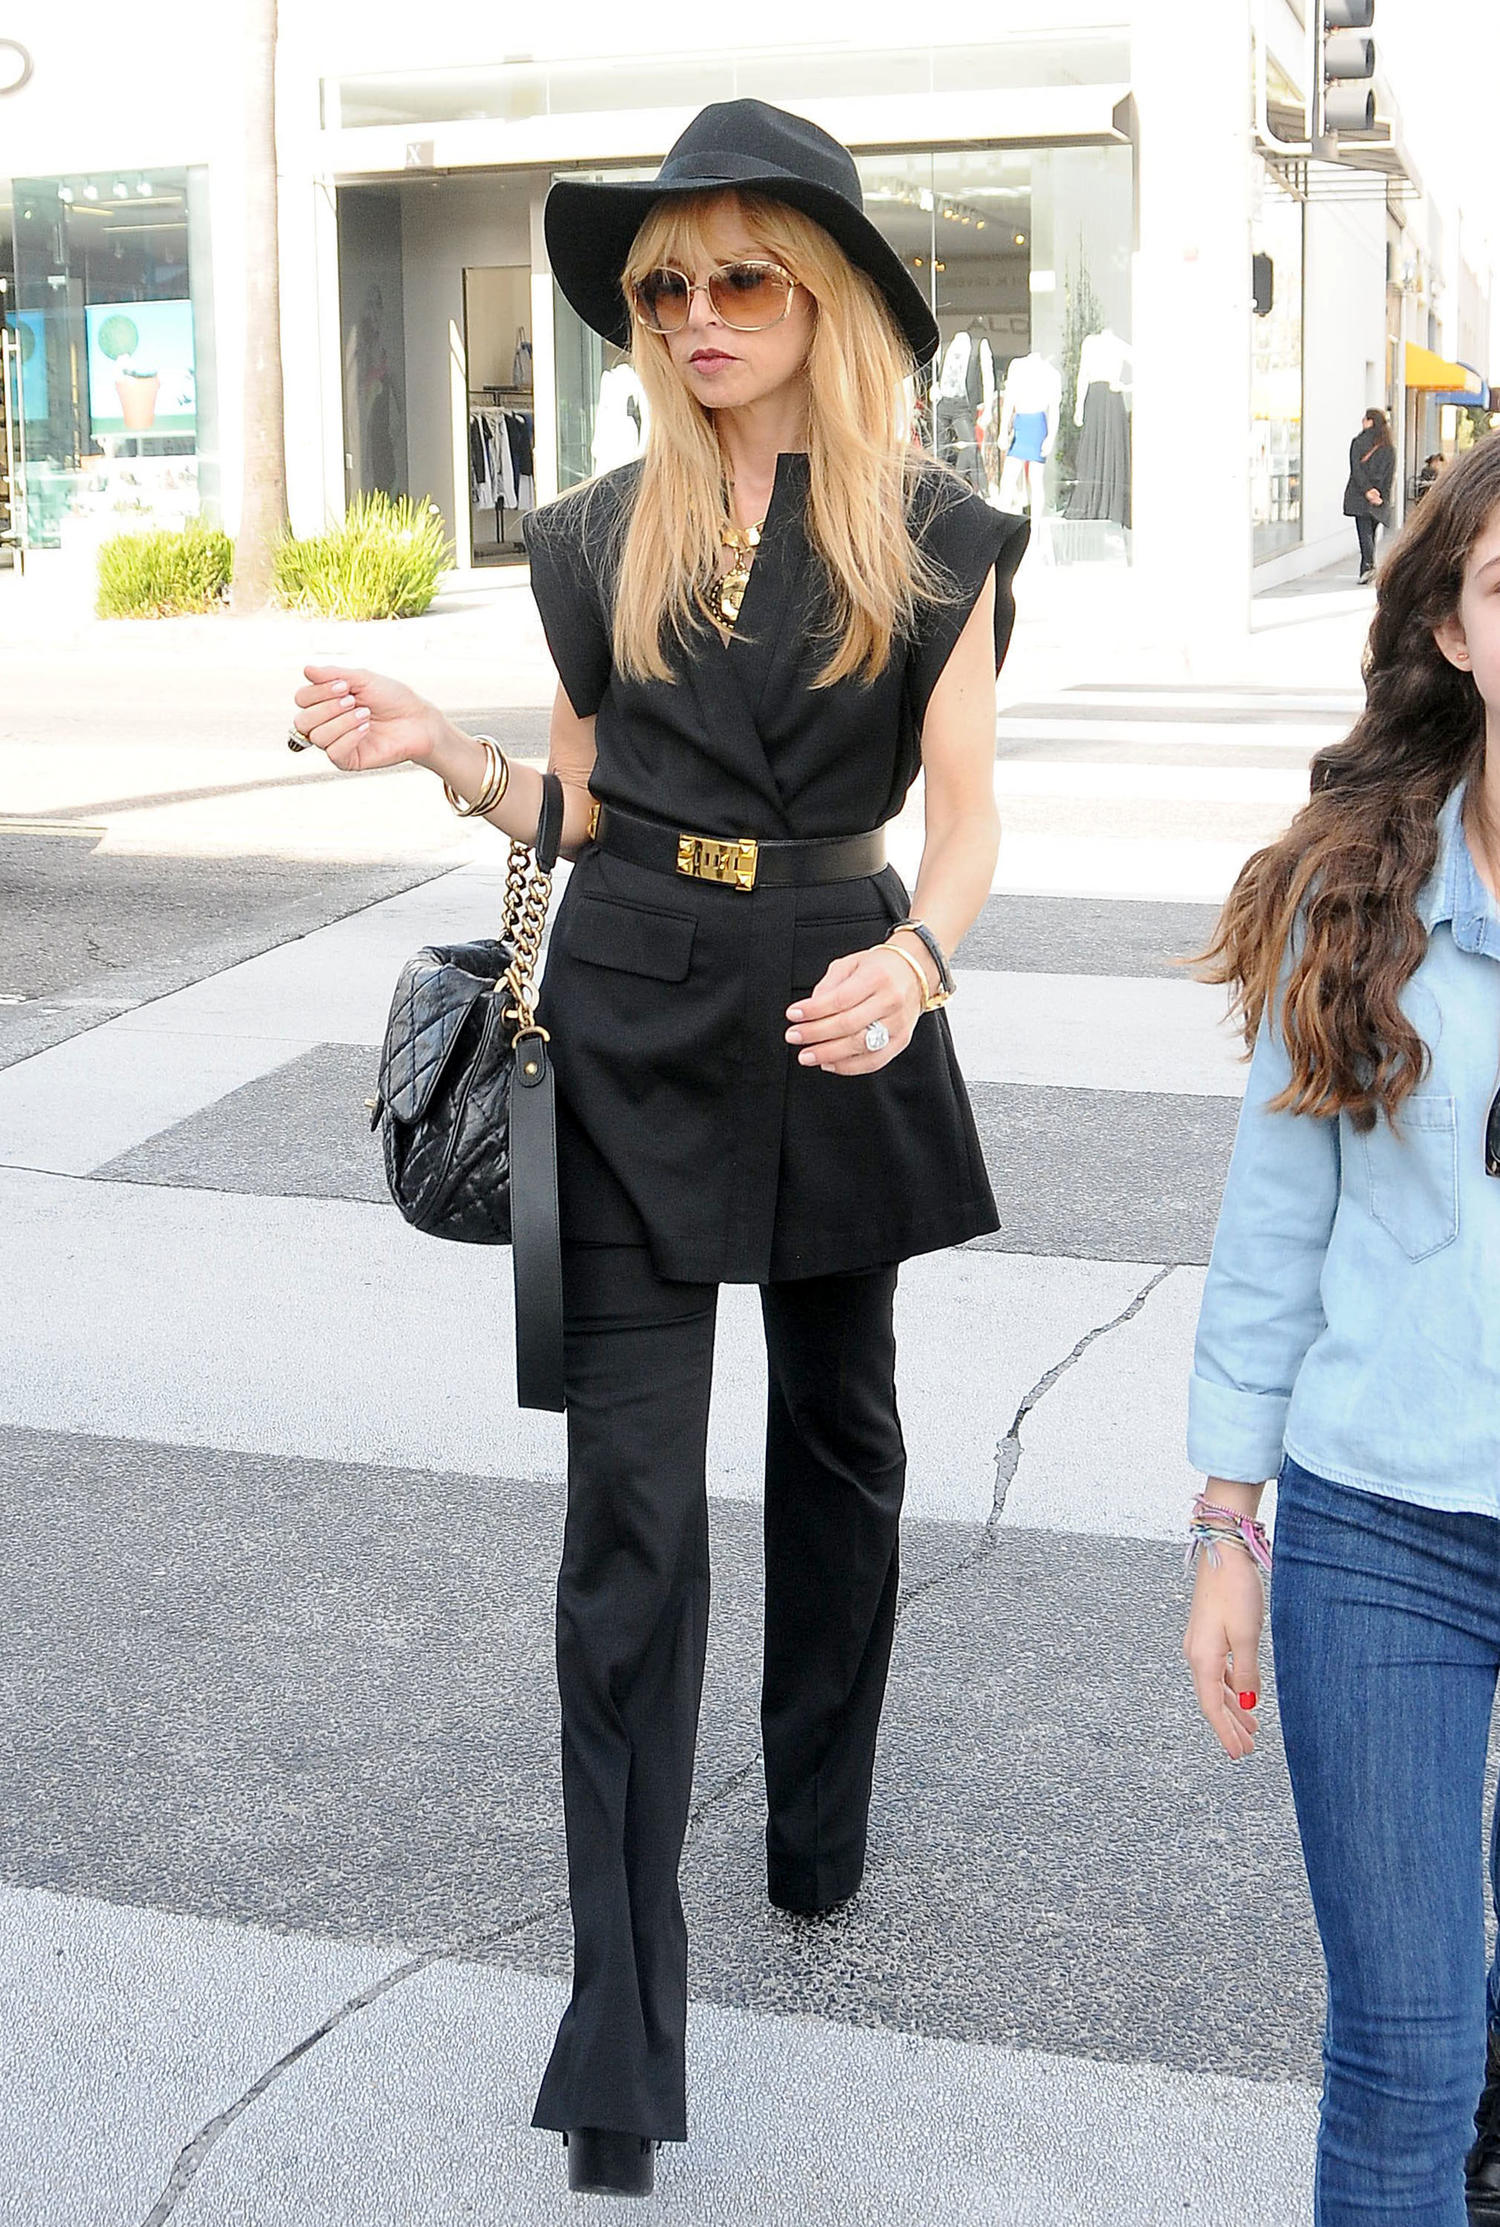 Rachel Zoe's Style DOs and DON'Ts - Glamour